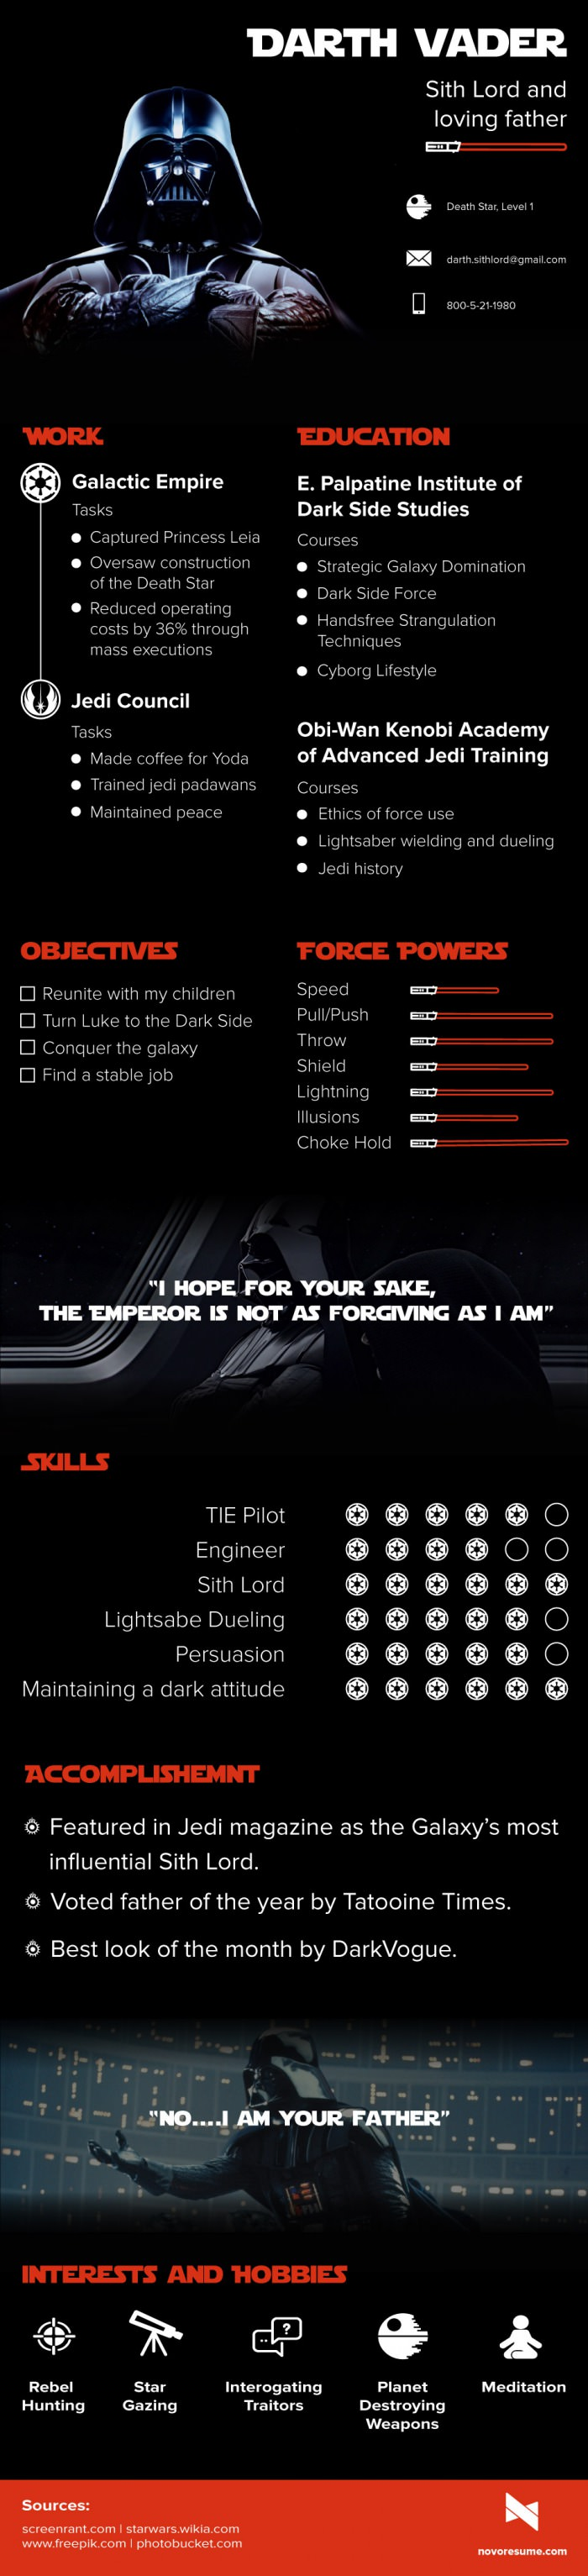 Darth Vader is Applying For a Job, Check Out His CV